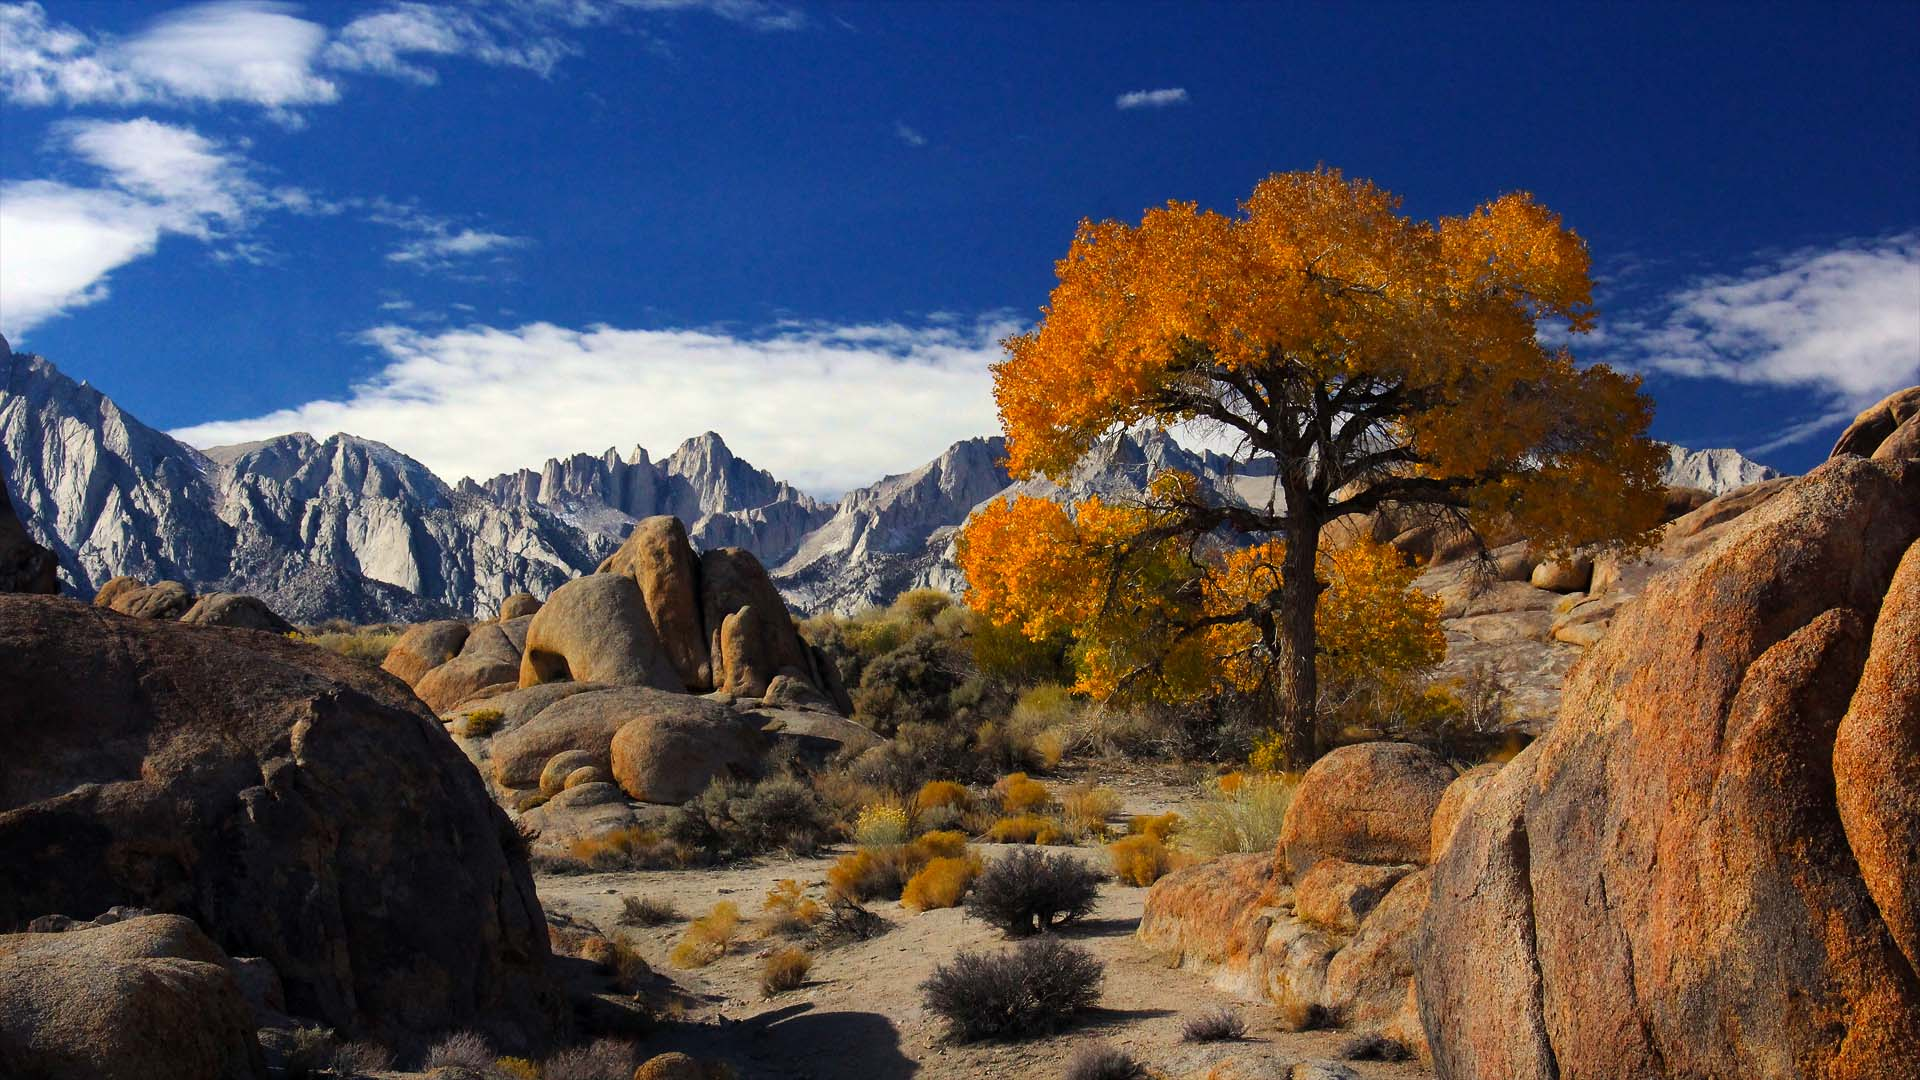 Free Hd Fall Desktop Wallpaper Autumn In Alabama Hills With Mount Whitney The Highest